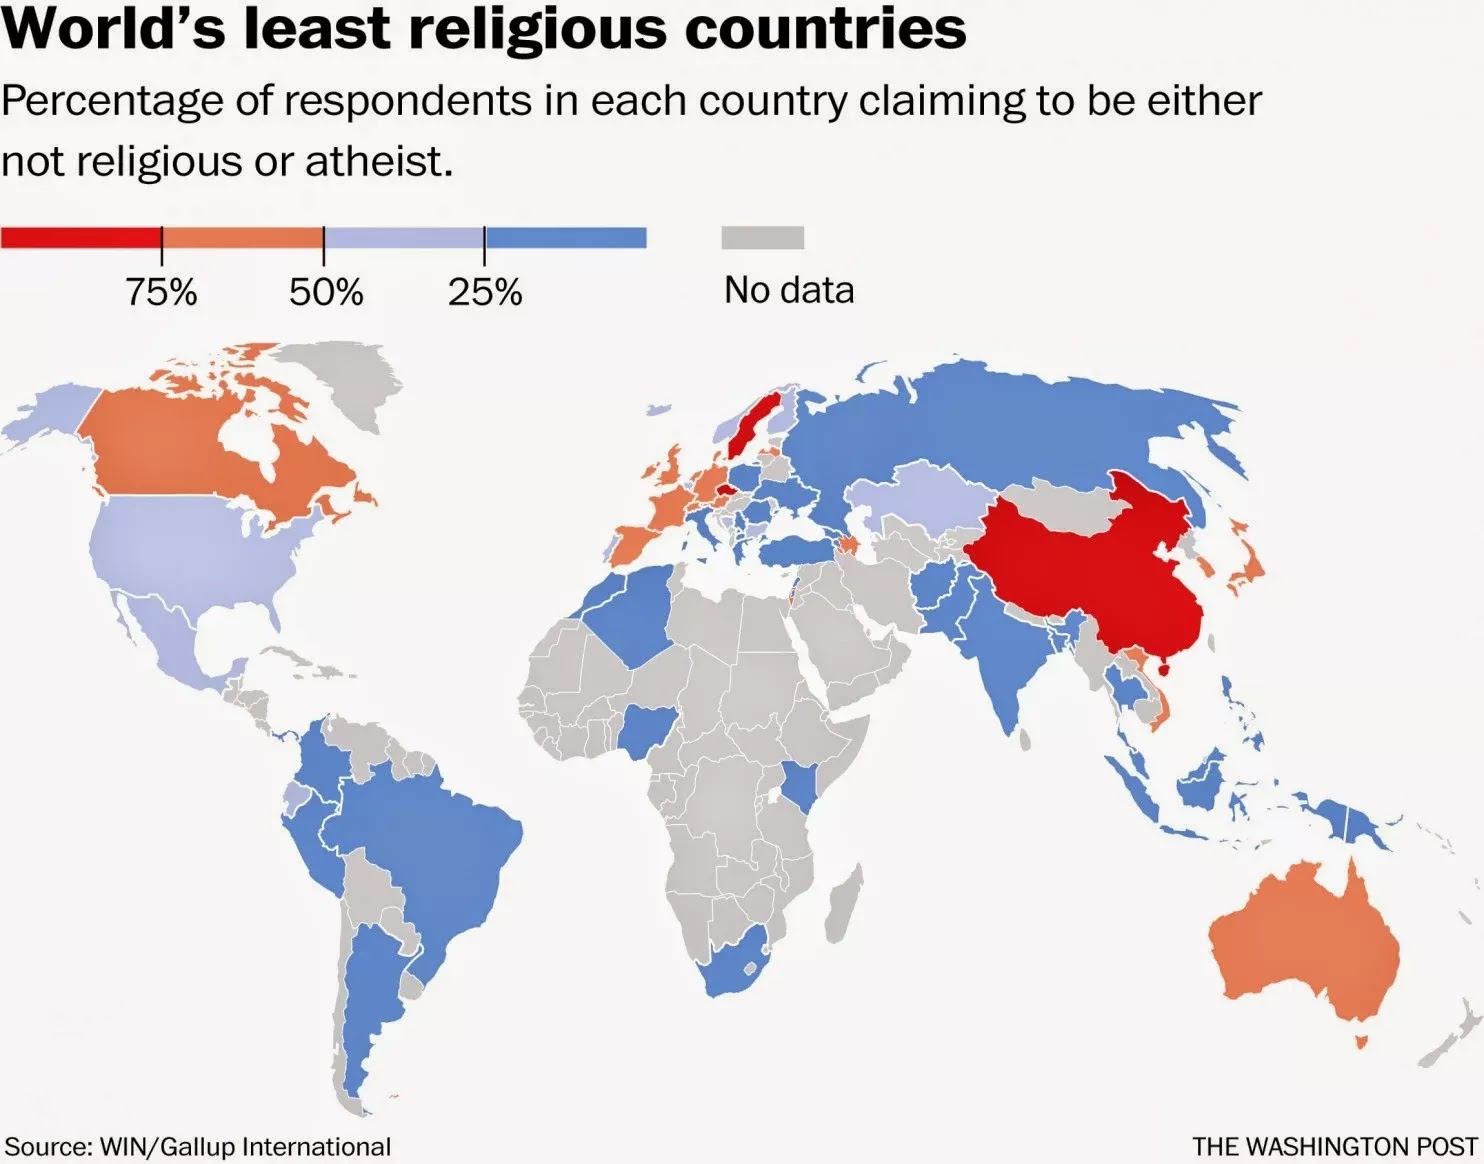 Percentage of respondents in each country claiming to be either not religious or atheist.